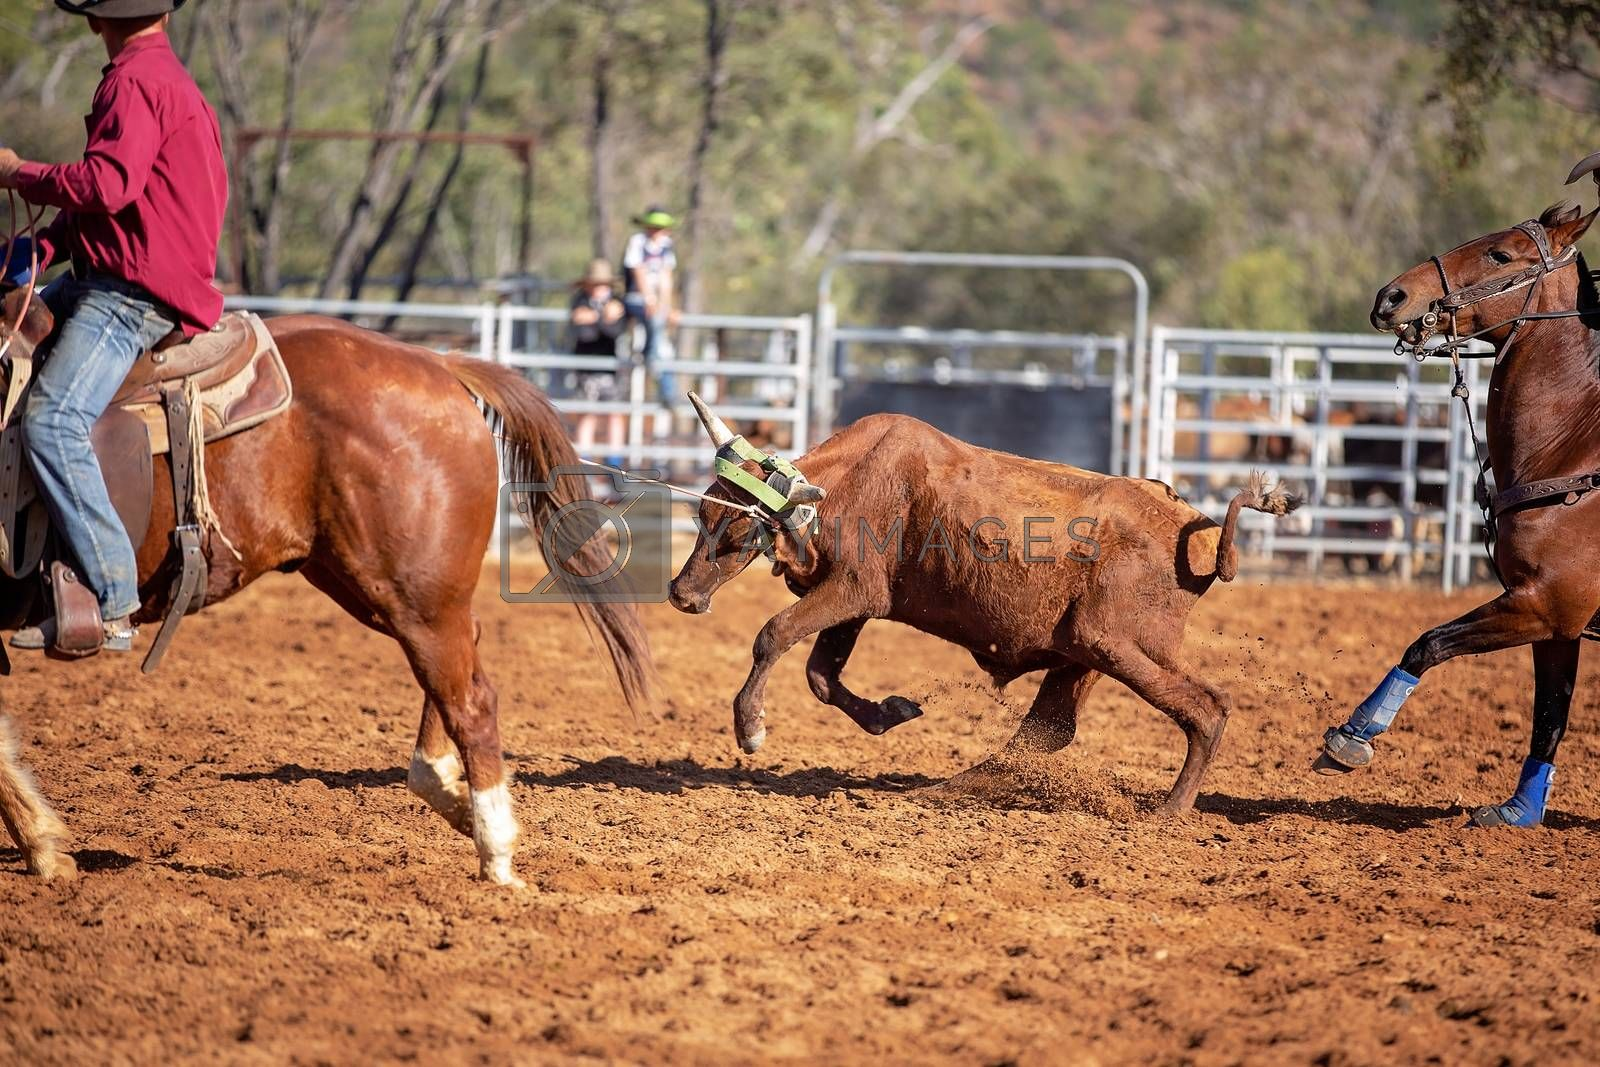 Calf roping event at an Australian country rodeo